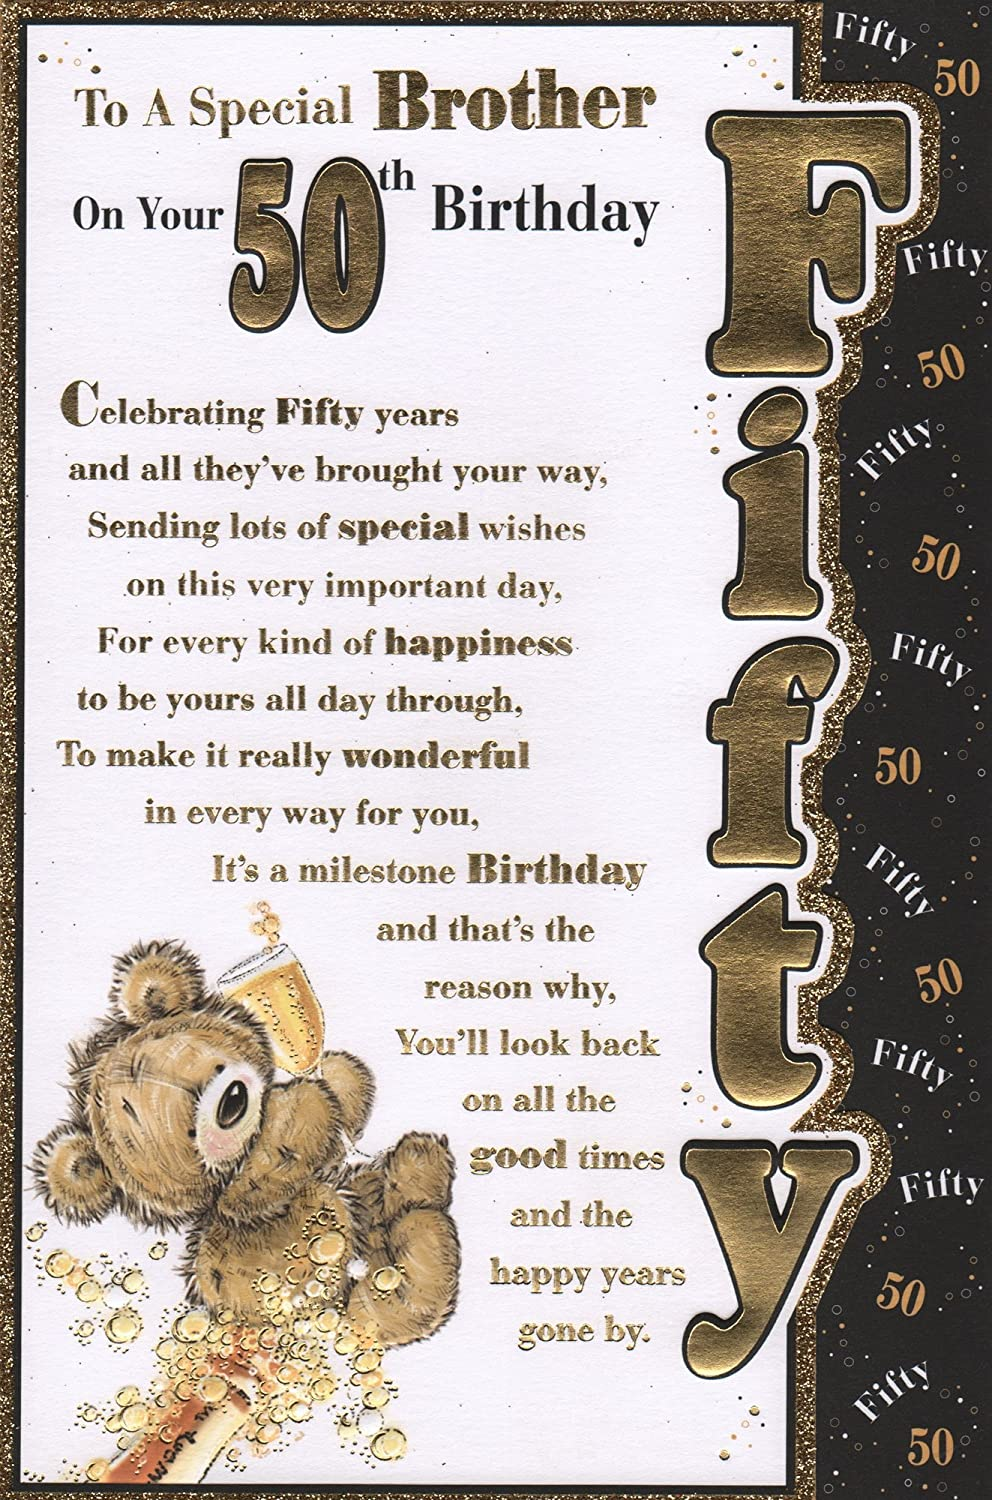 Brother 50th Birthday Card To A Special Brother On Your 50th